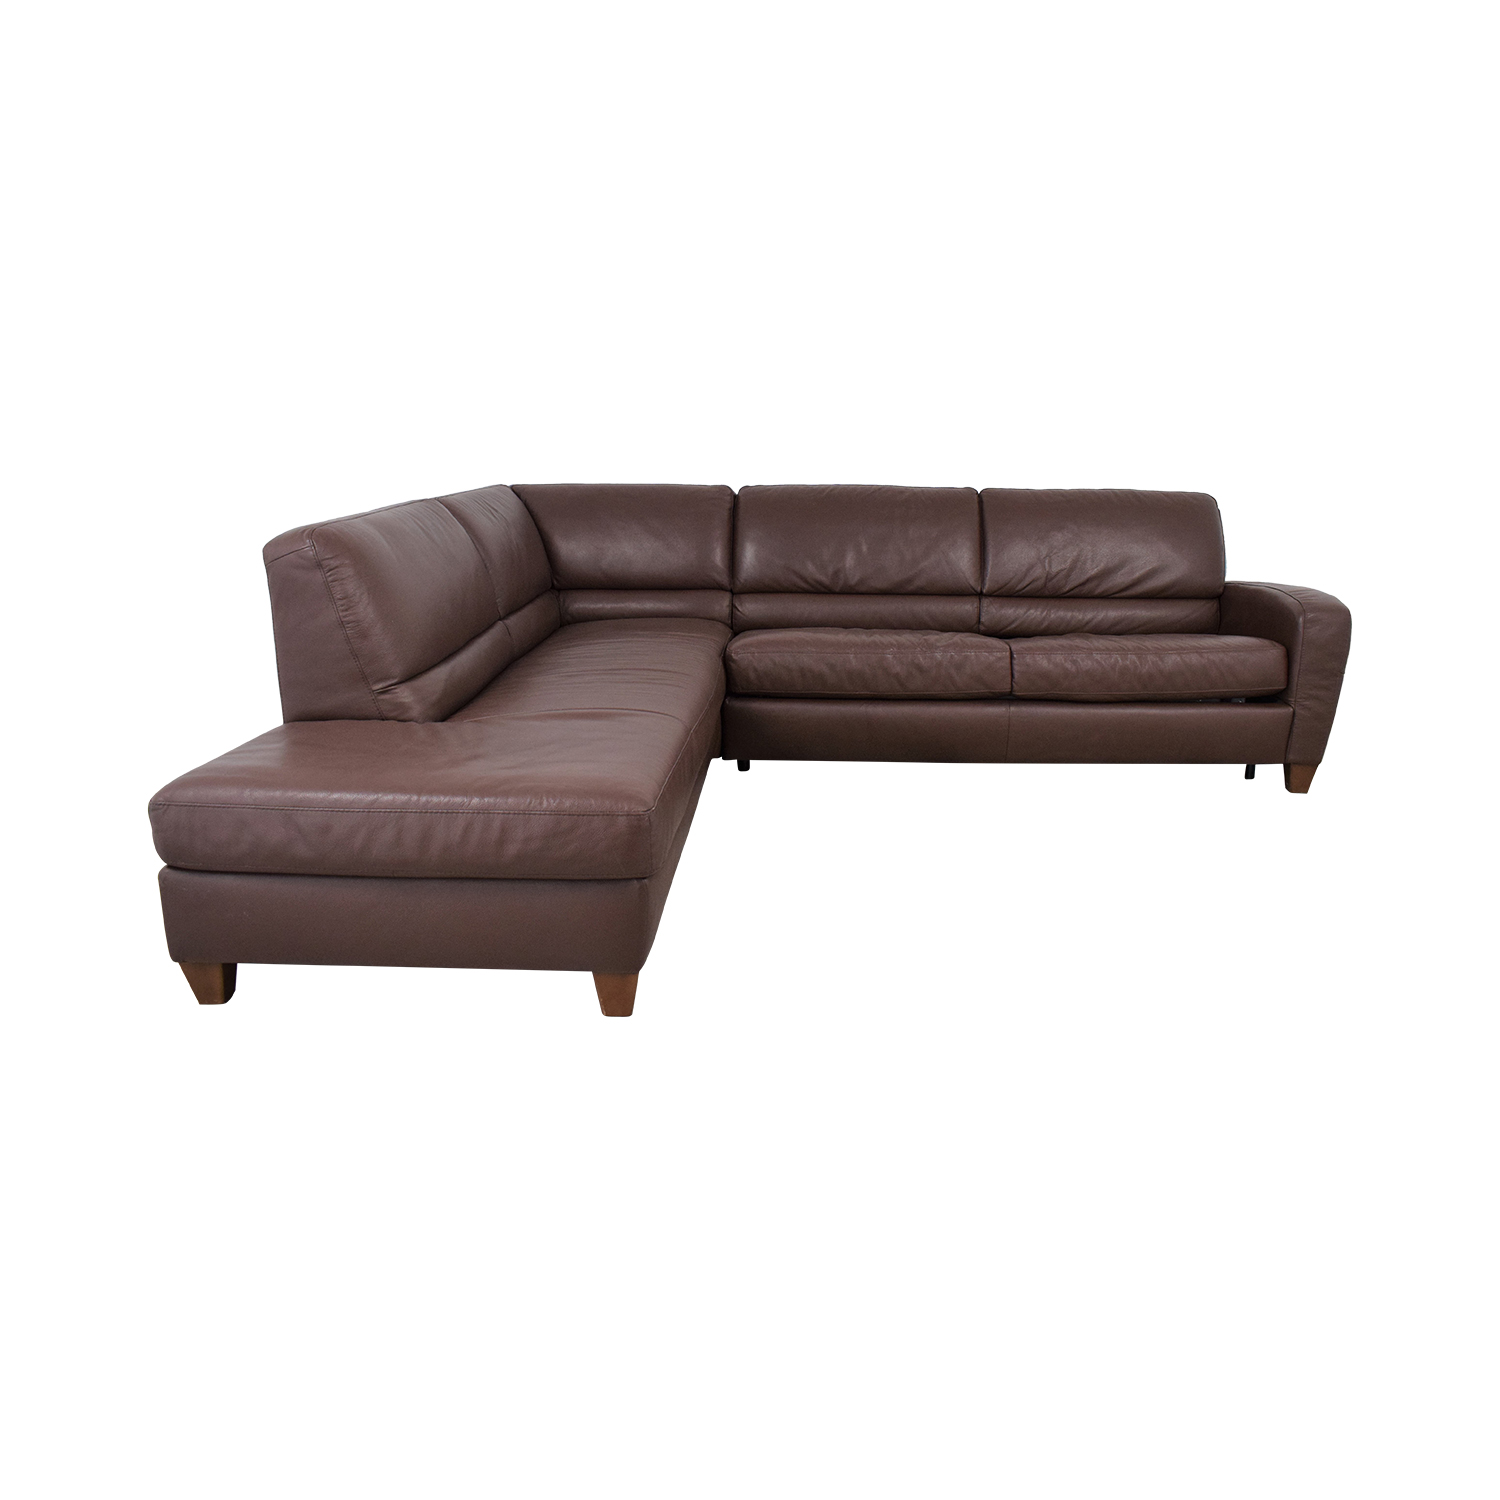 Italsofa Italsofa Sectional Sleeper Sofa with Chaise